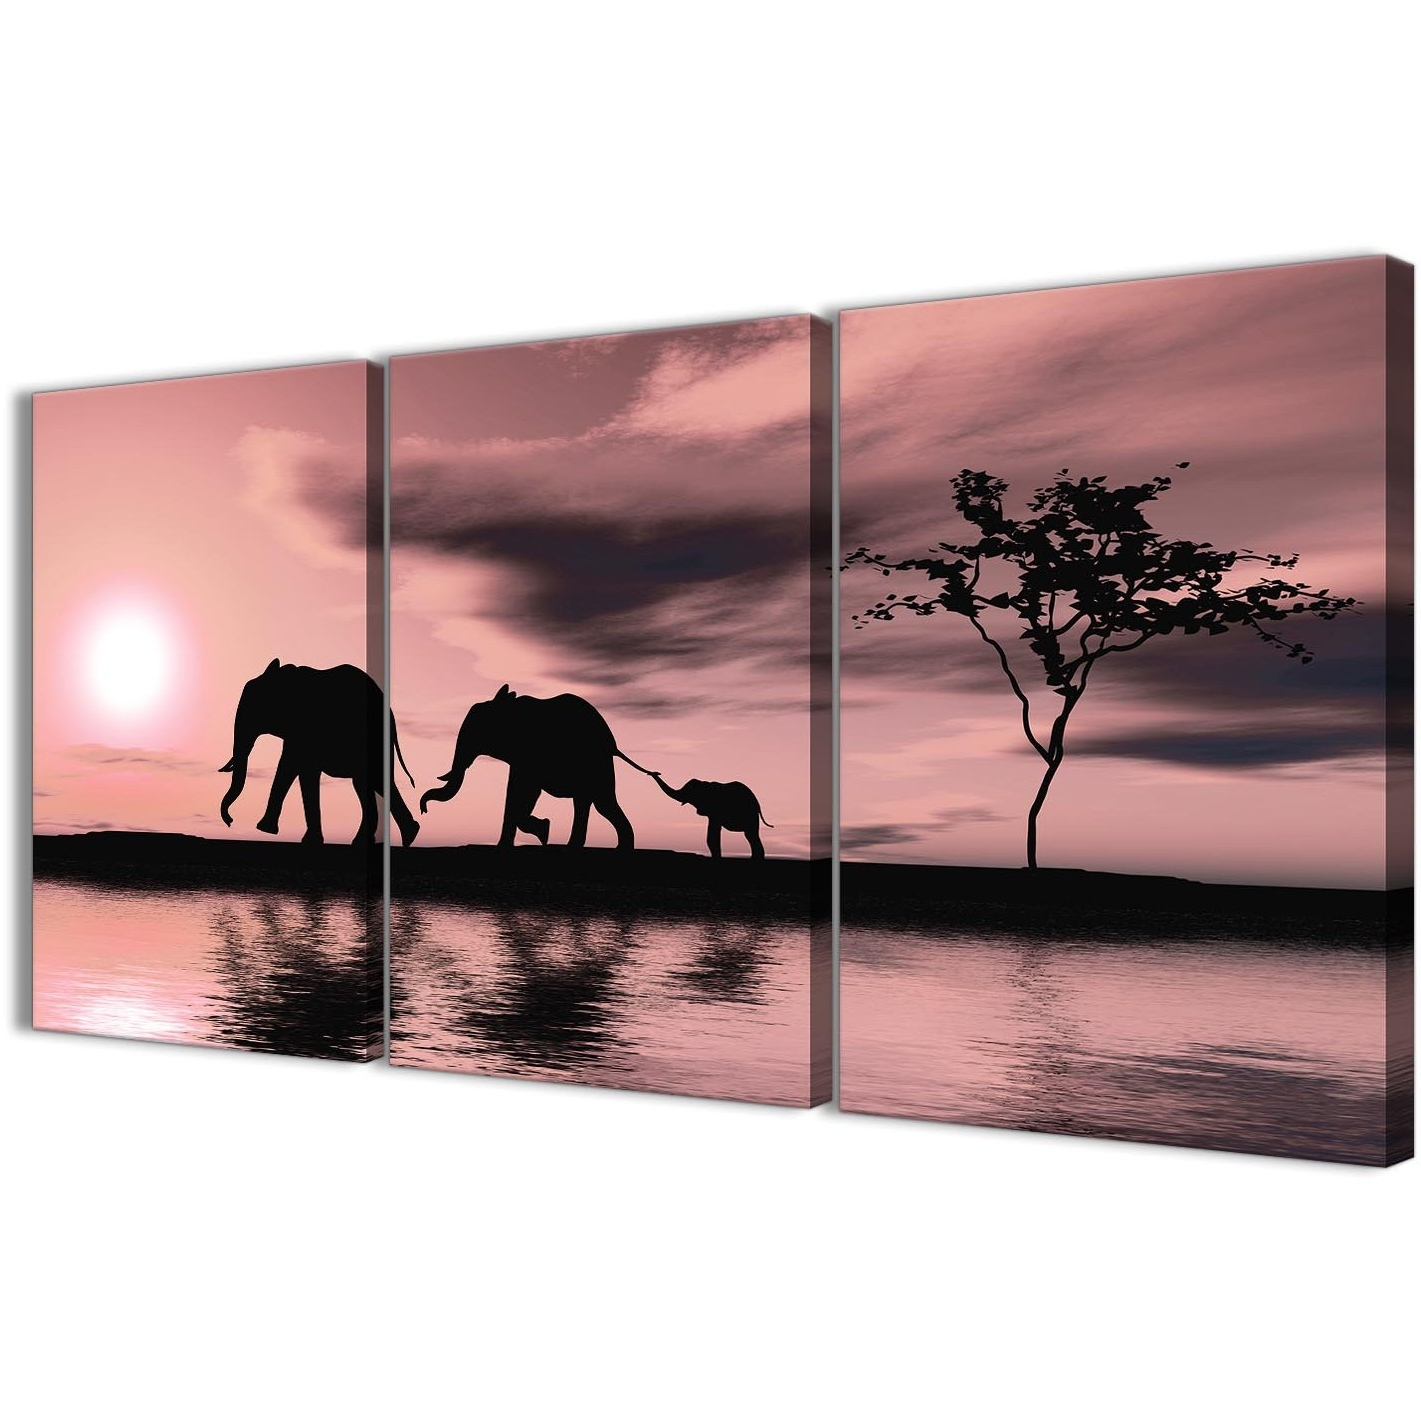 Most Recent Elephant Canvas Wall Art Inside Blush Pink African Sunset Elephants Canvas Wall Art Print – Multi (View 17 of 20)